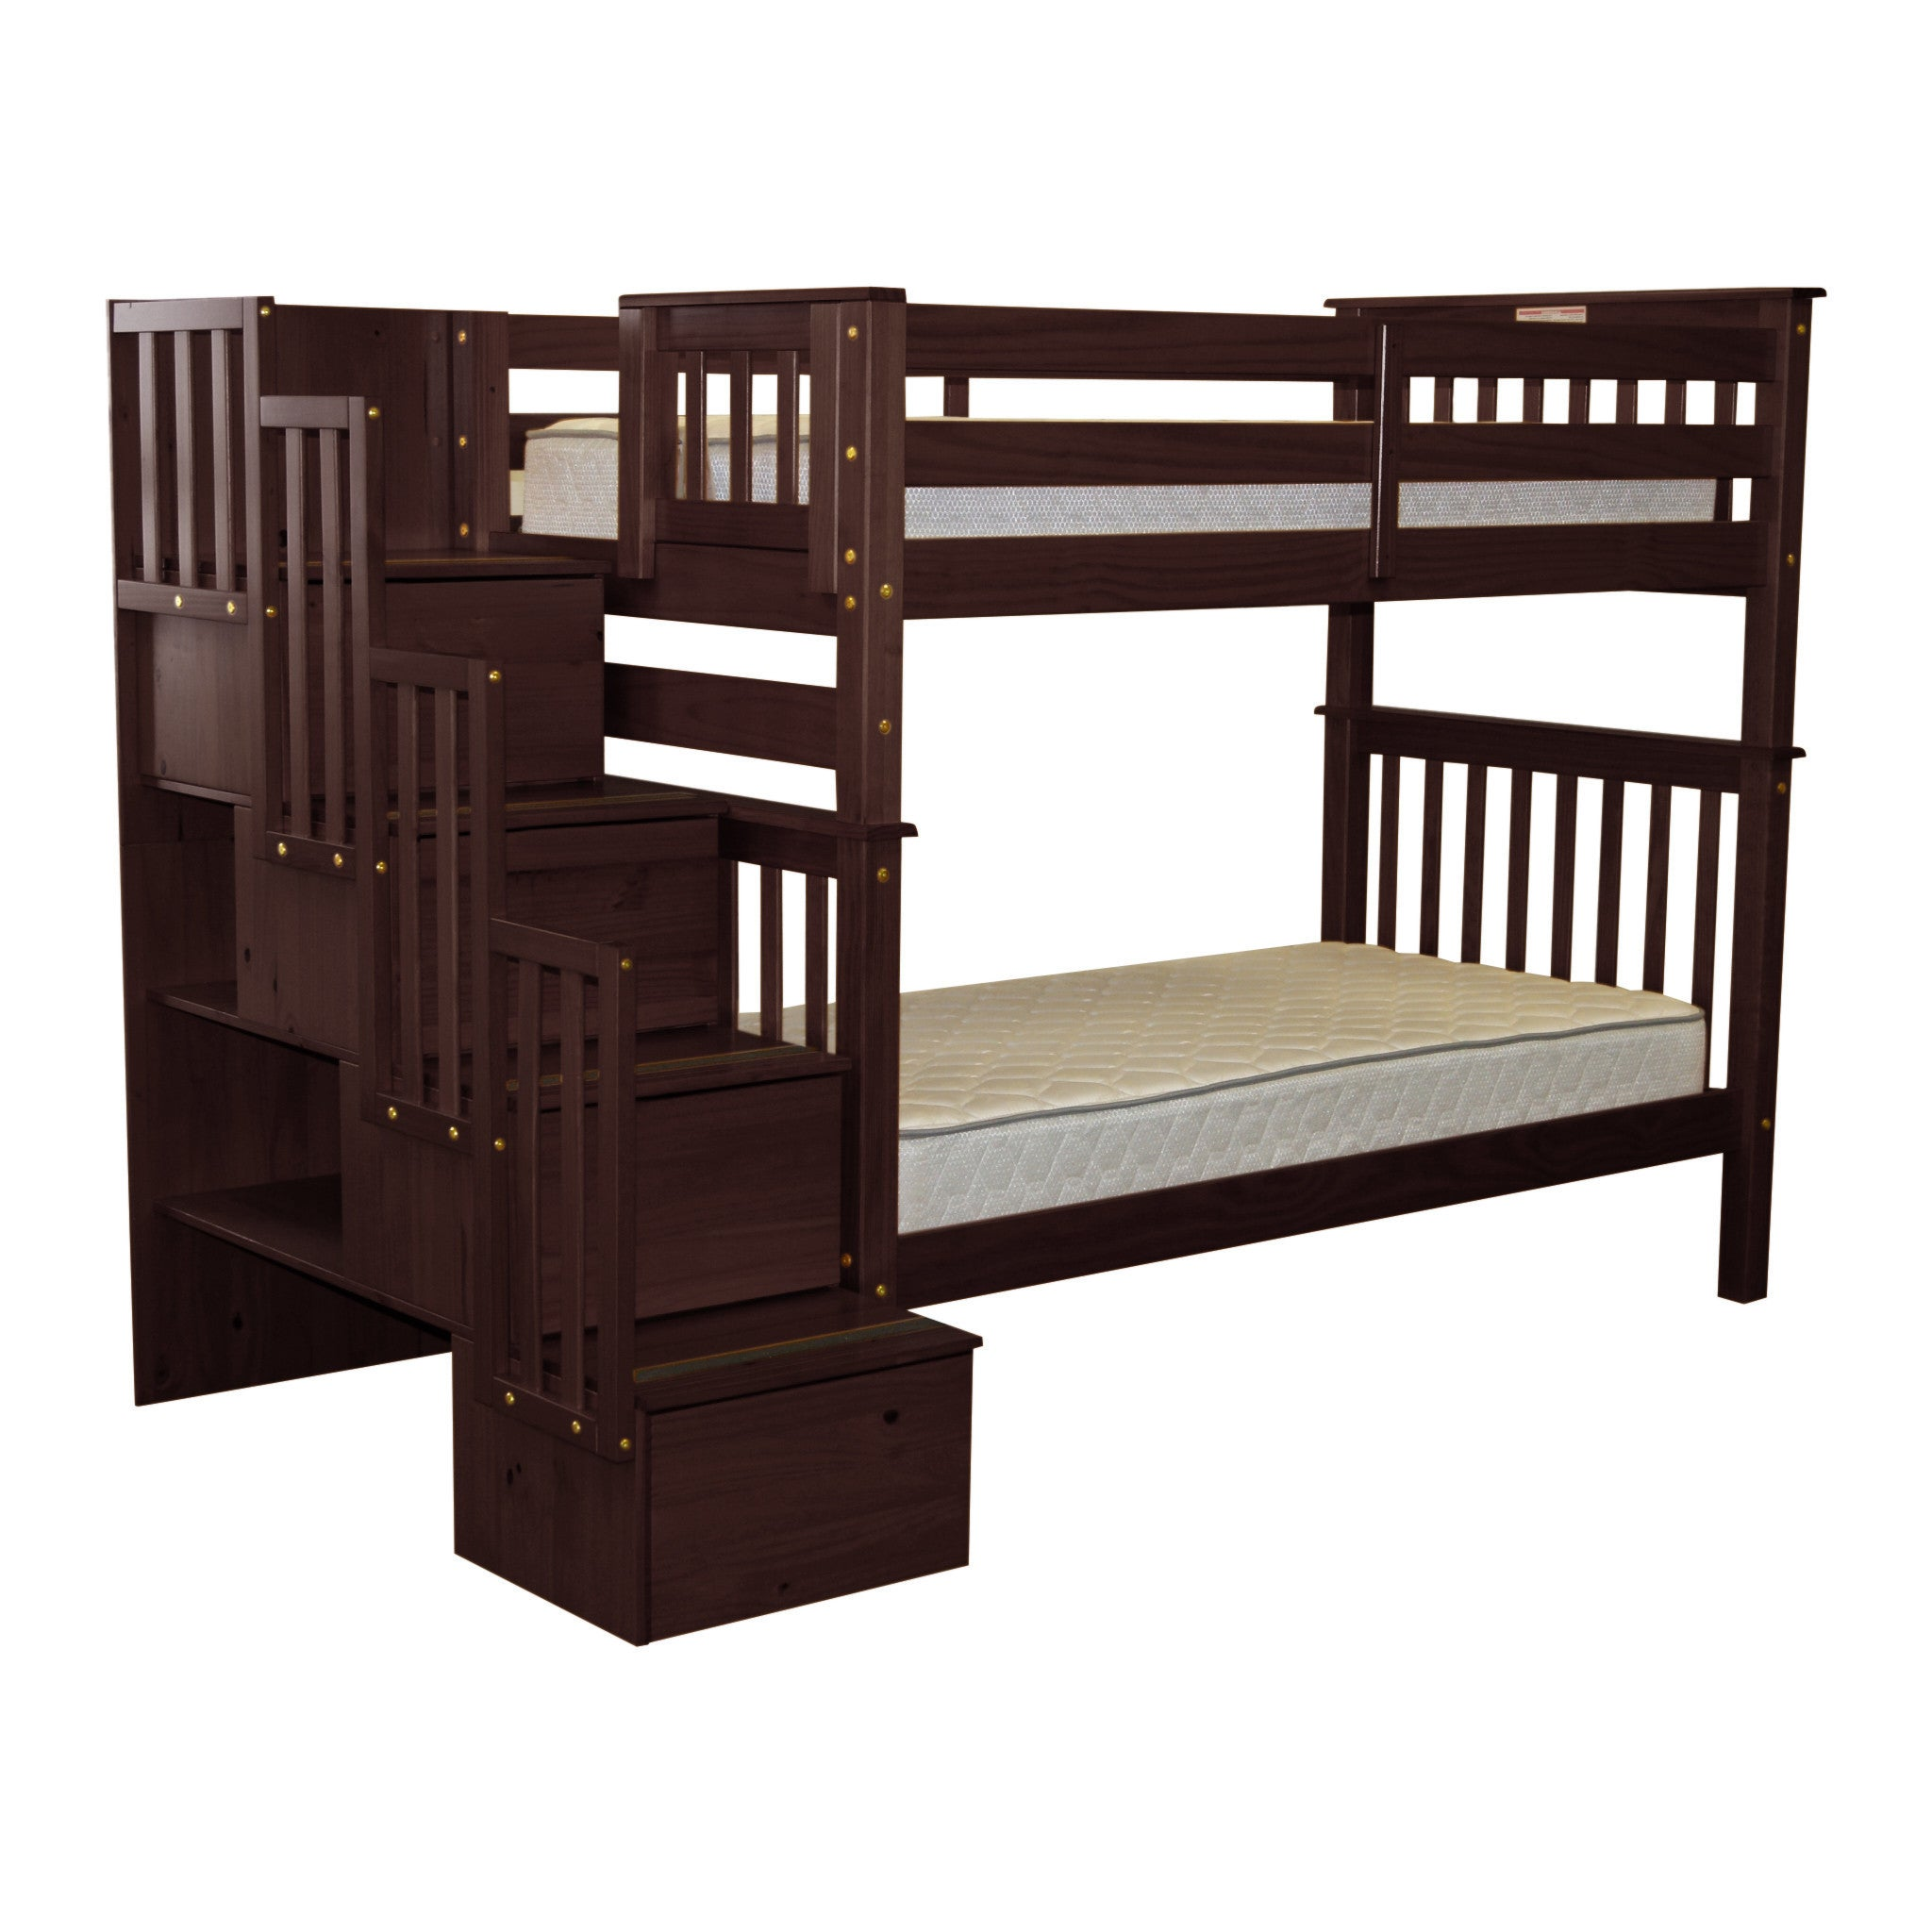 RoomMates Bedz King Tall Stairway Bunk Bed Twin over Twin...